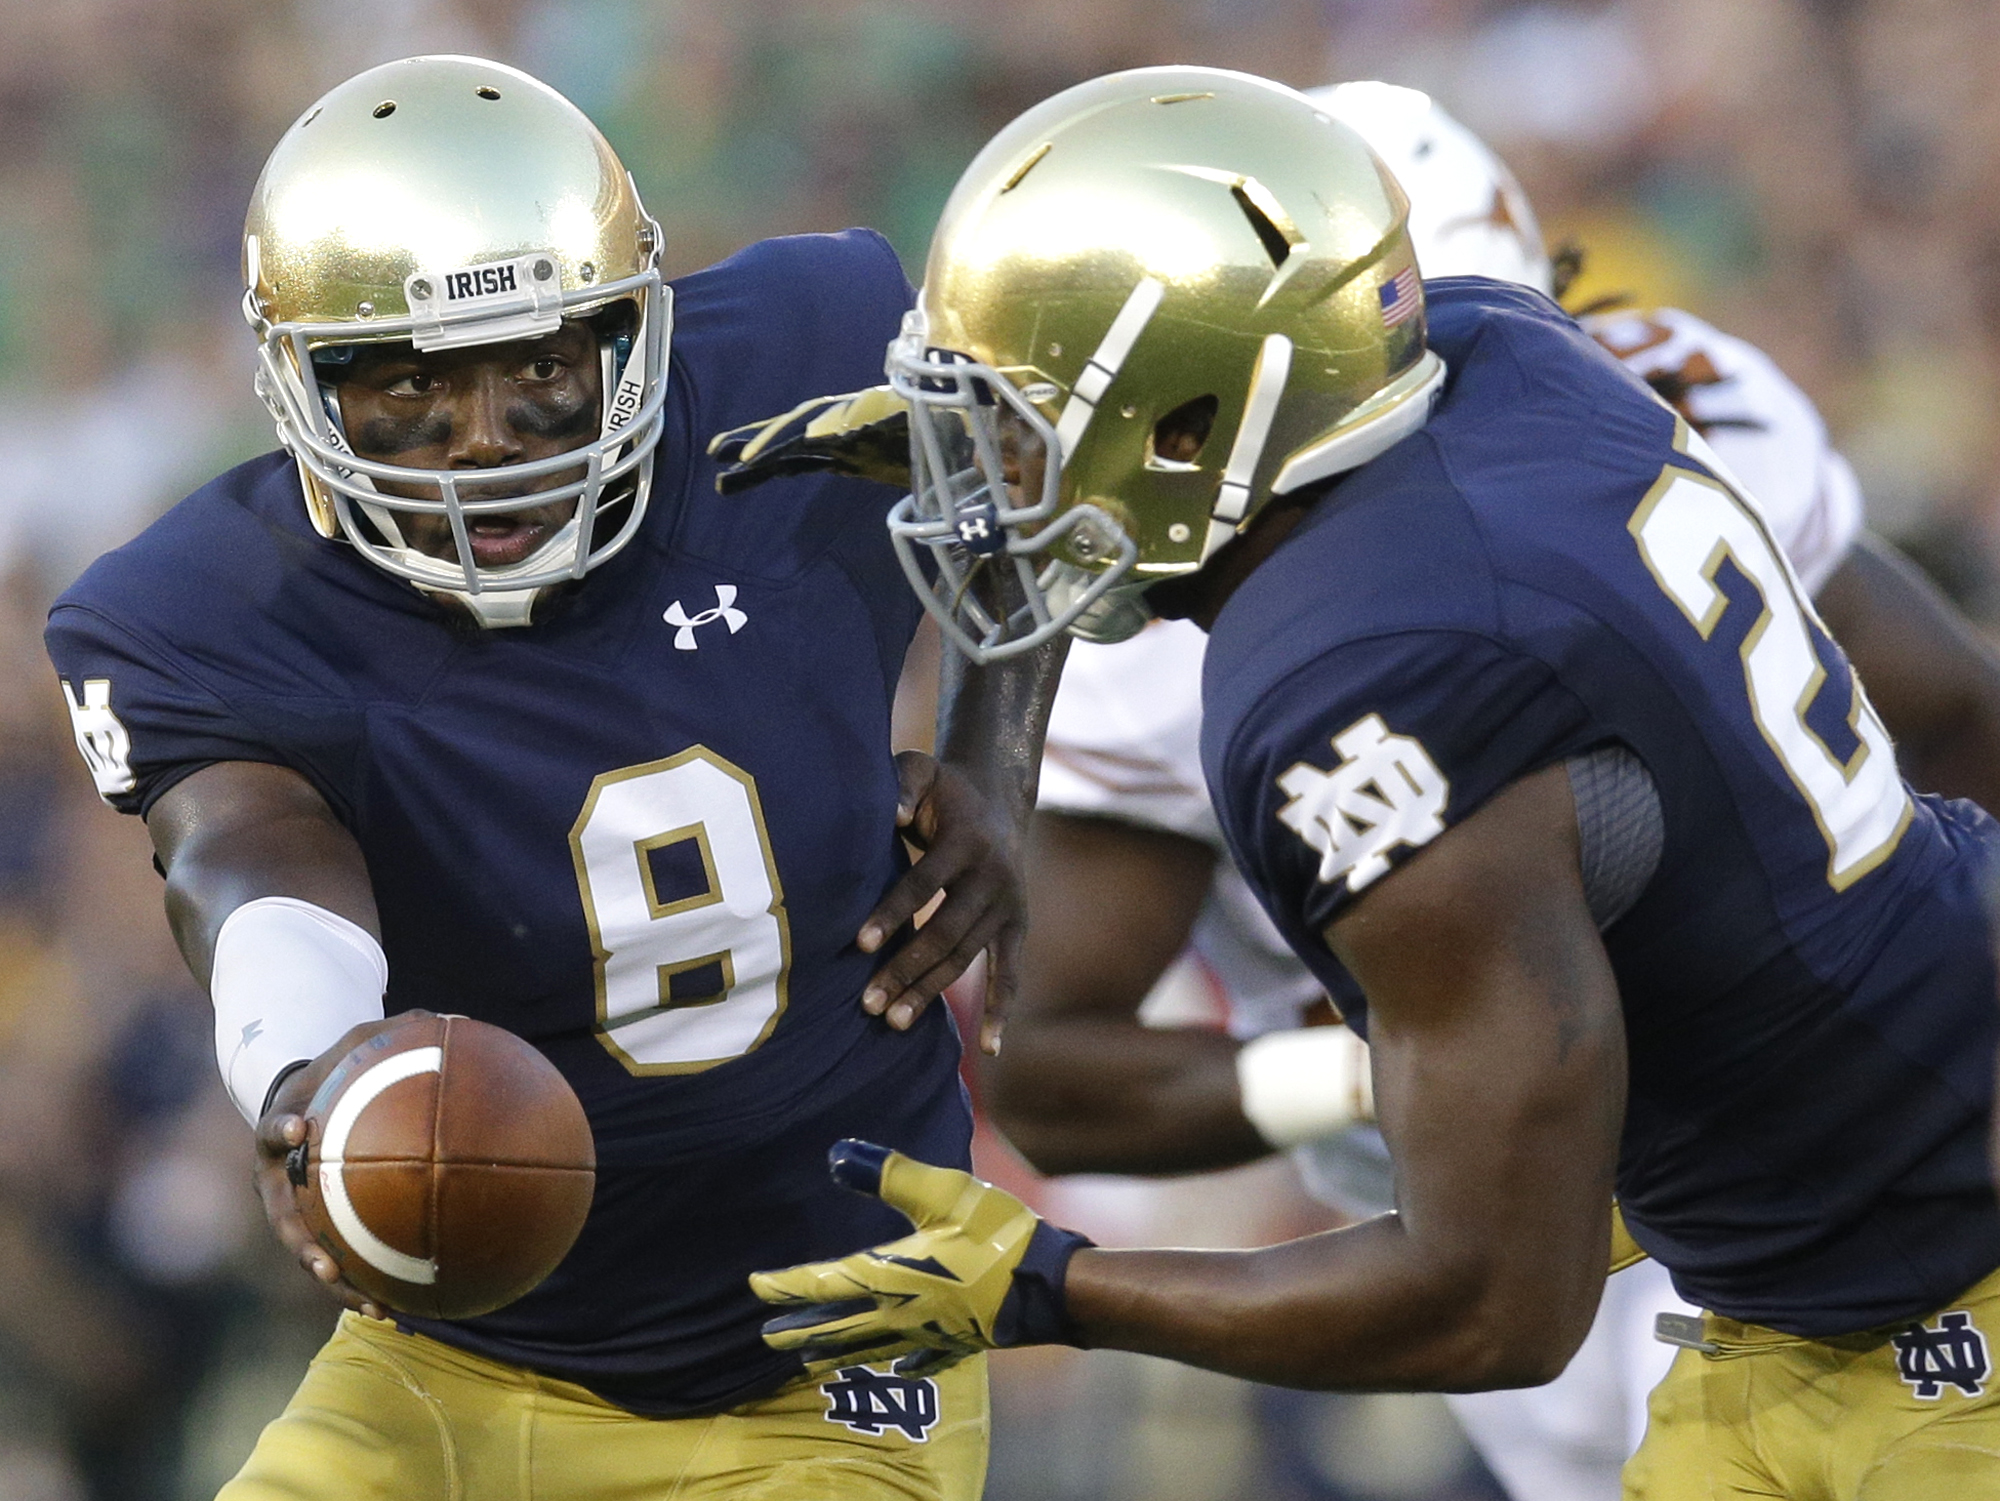 Notre Dame quarterback Malik Zaire, left, hands off to running back Tarean Folston during the first half of an NCAA college football game against Texas, Saturday, Sept. 5, 2015, in South Bend, Ind. (AP Photo/Nam Y. Huh)